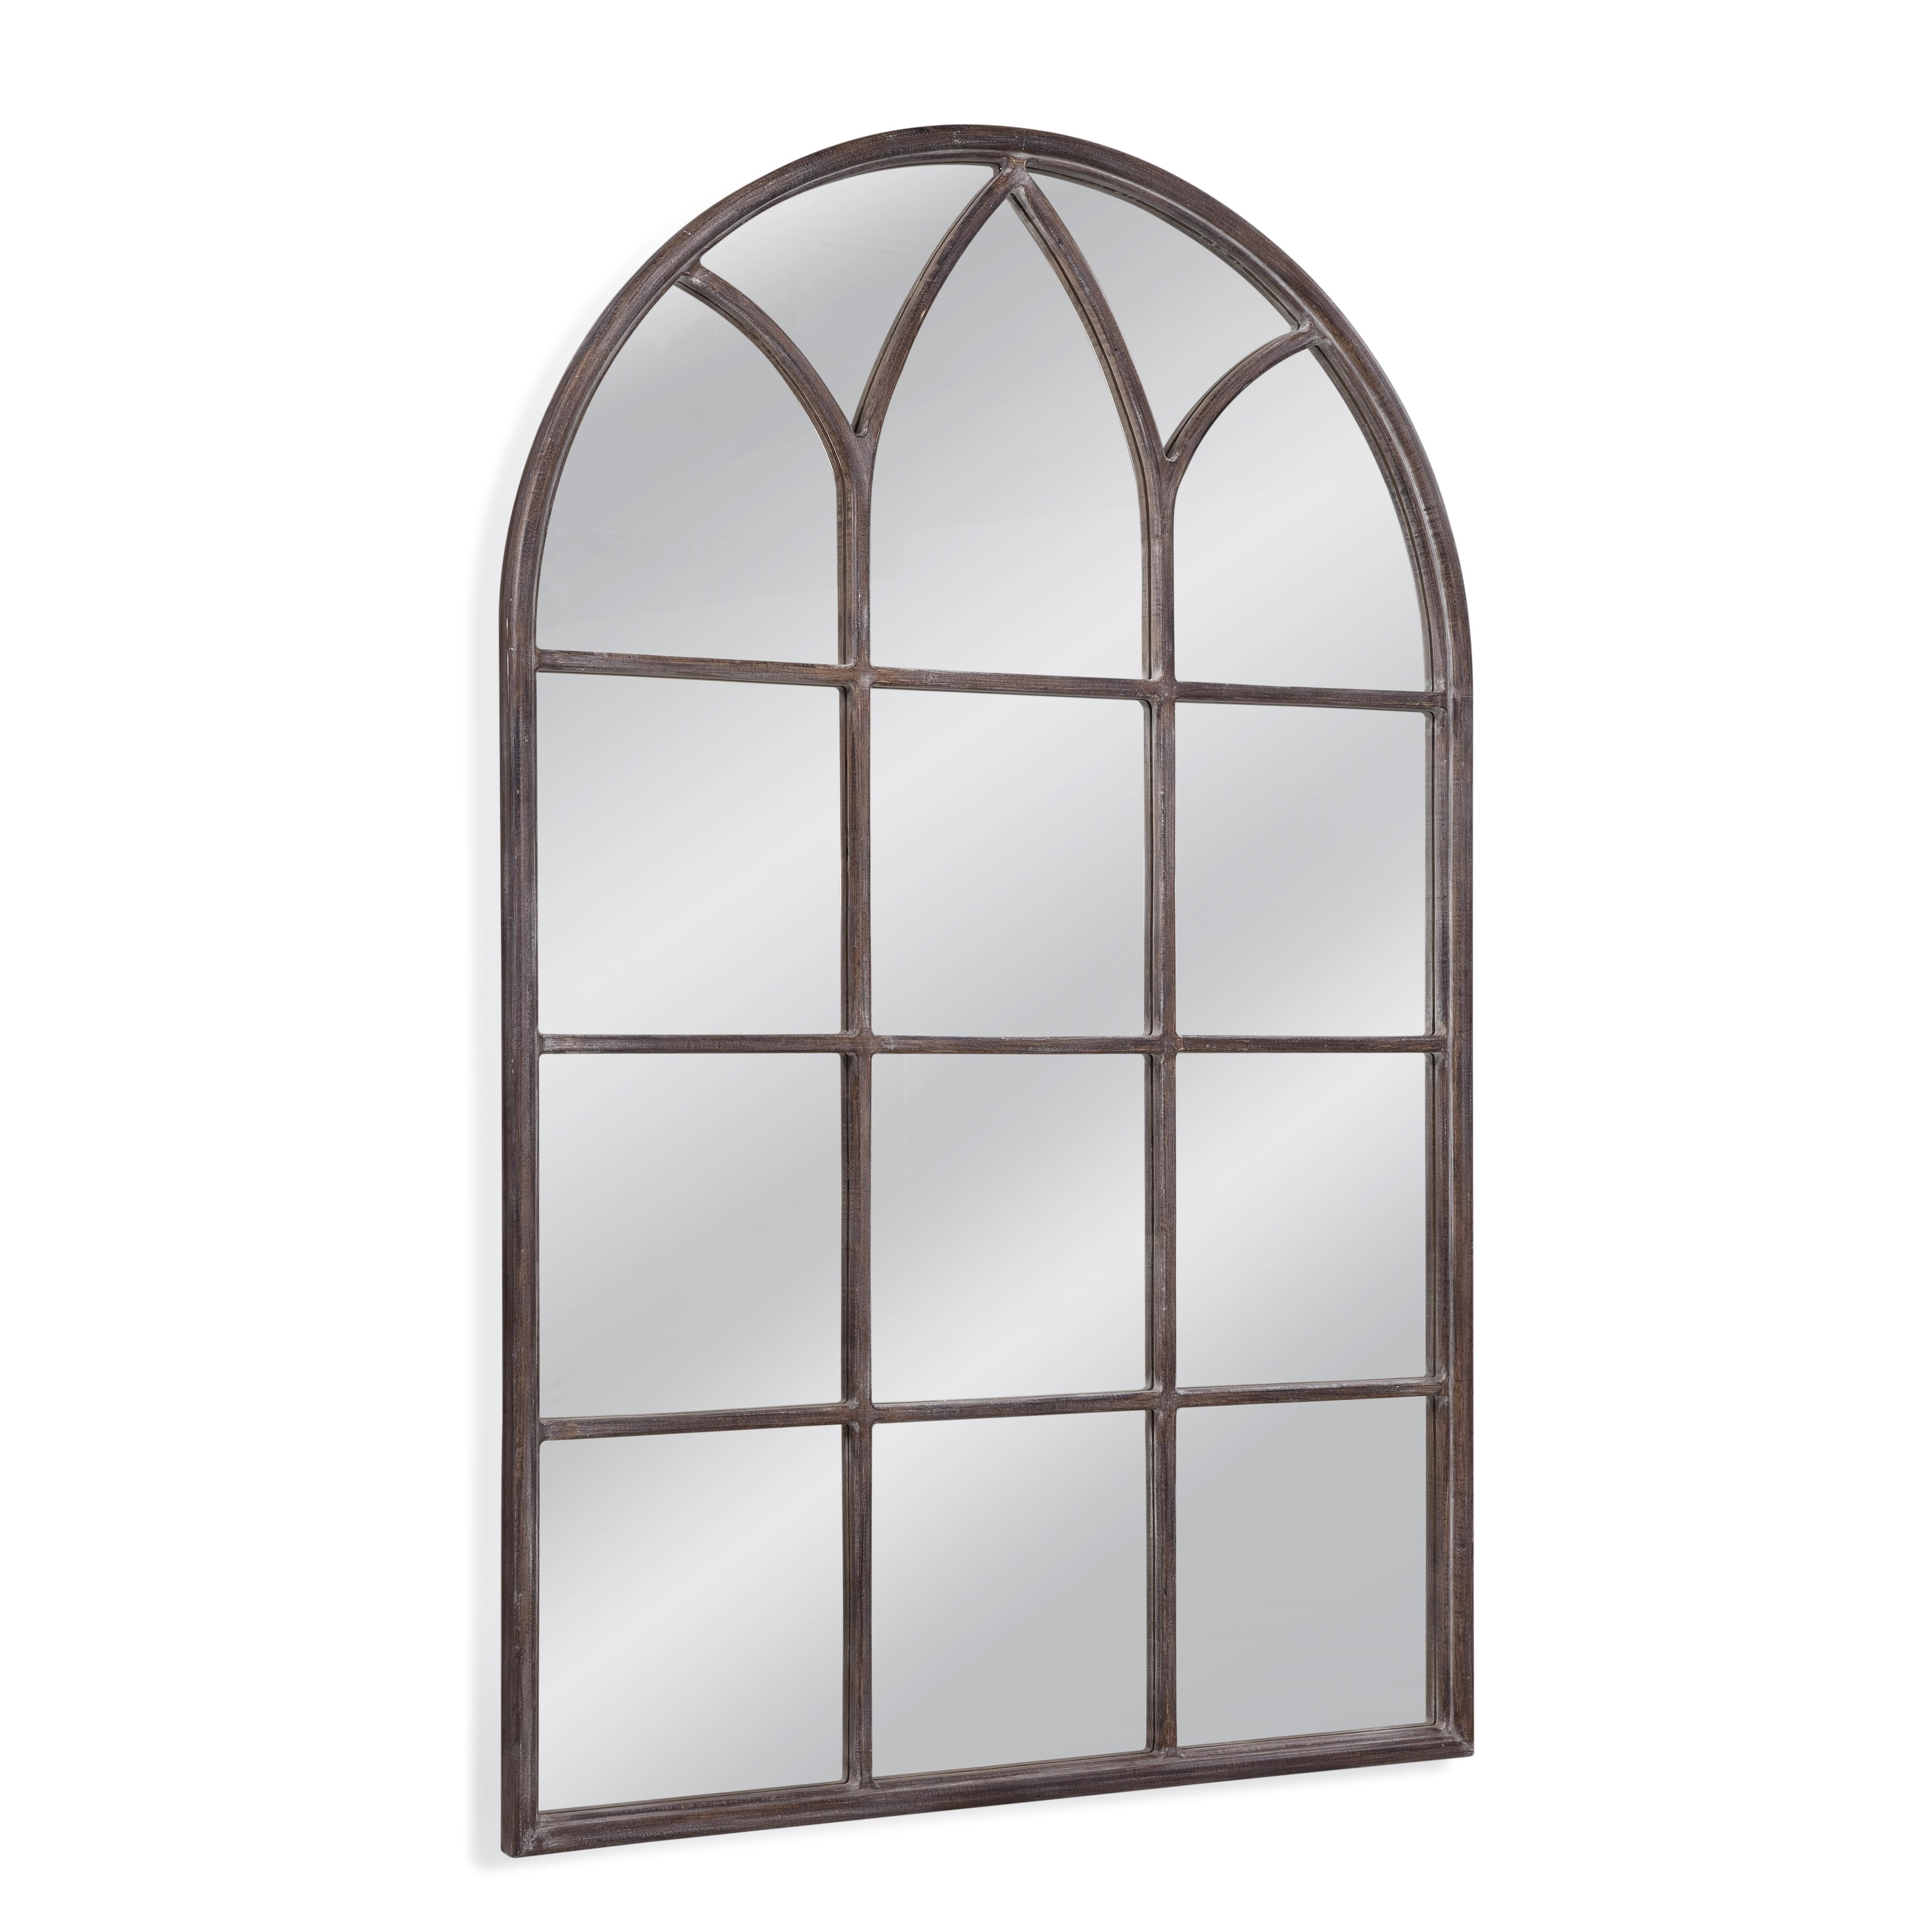 Belgian Luxe Pinole Leaner Mirror by Bassett Mirror at Alison Craig Home Furnishings